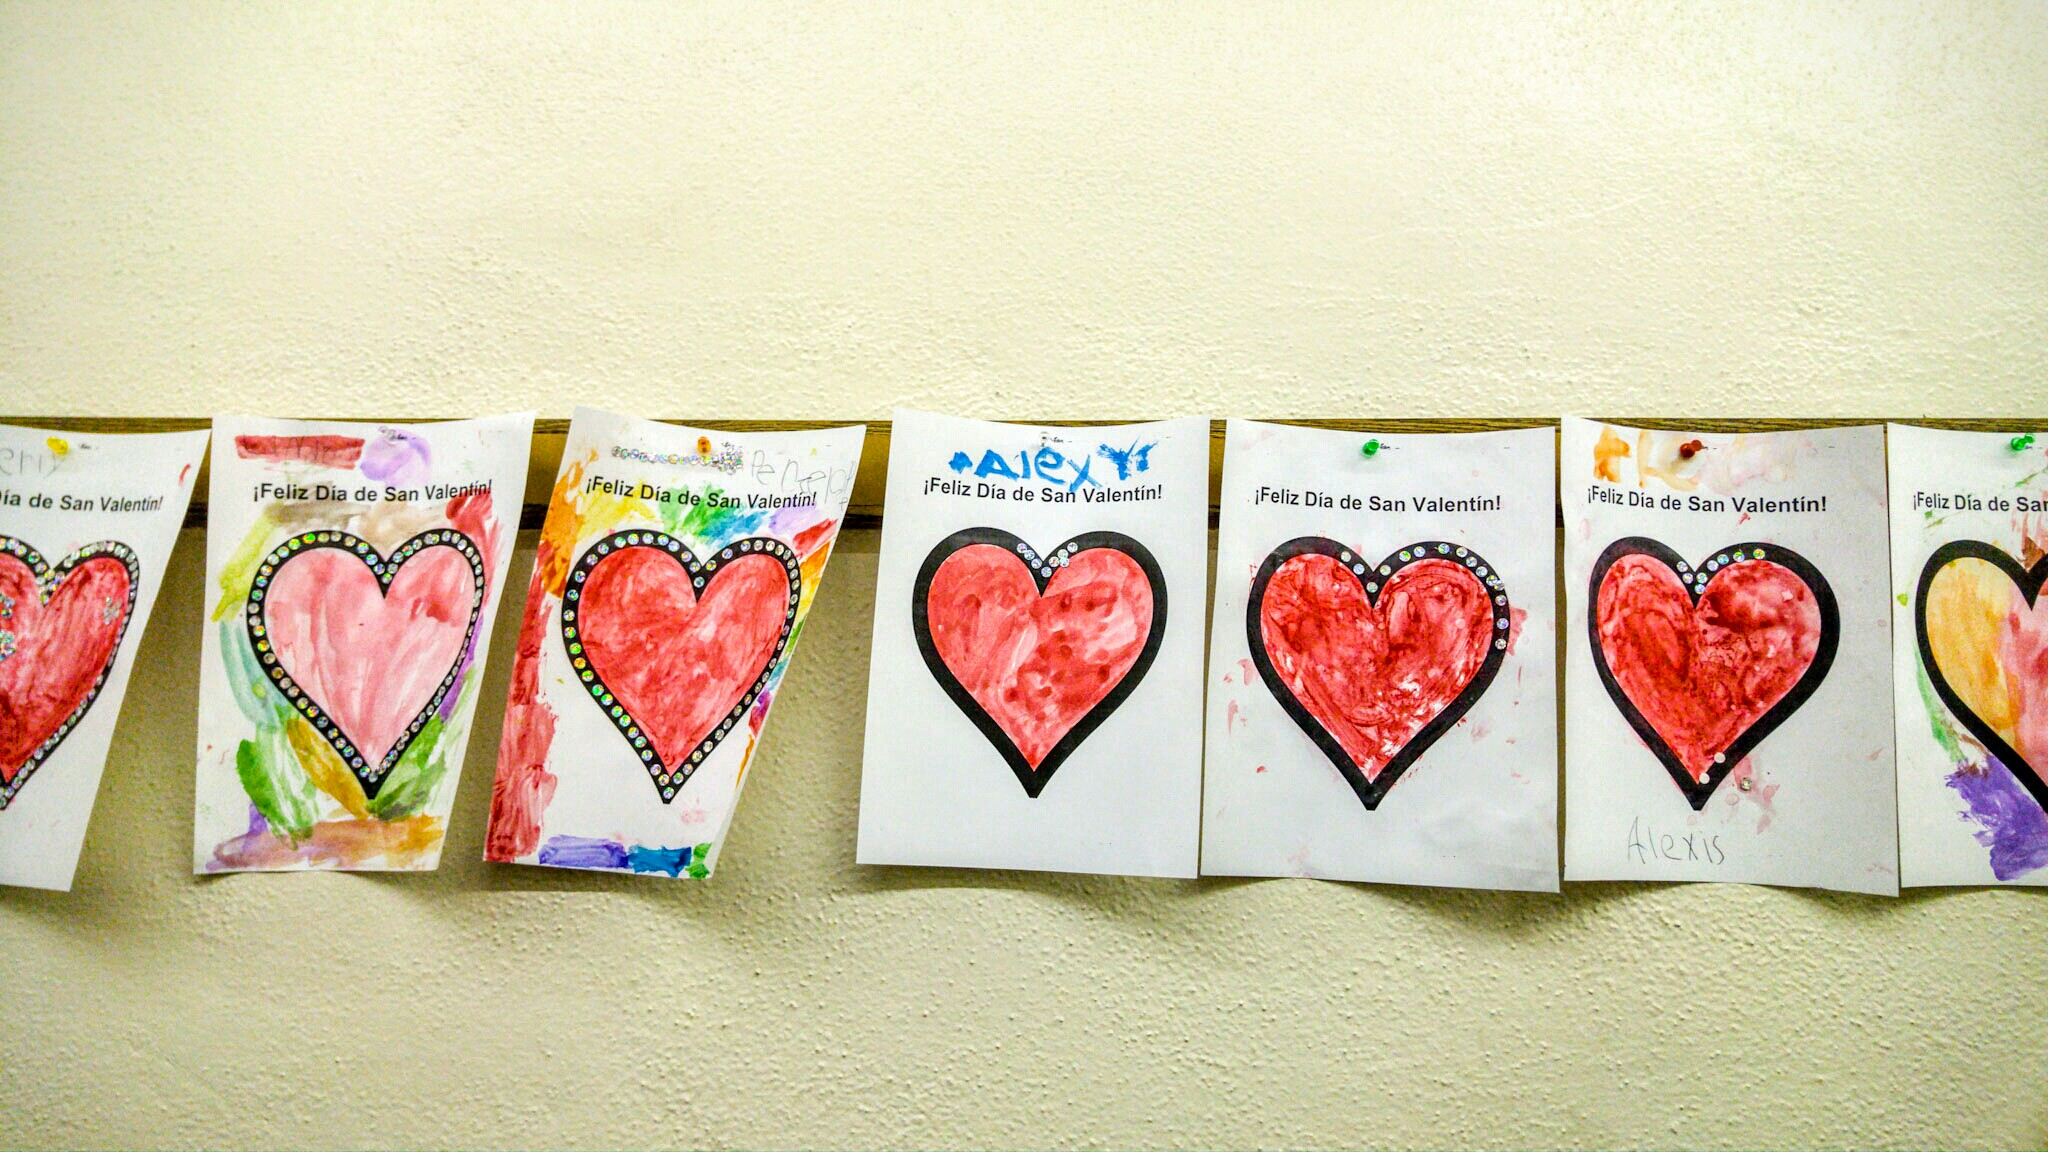 The artwork of elementary school children lined the walls as I waited to cast my vote. It was a happy and poignant reminder that voting is a civic duty - an act of hopefully - ensuring the common good and well-being of future generations.